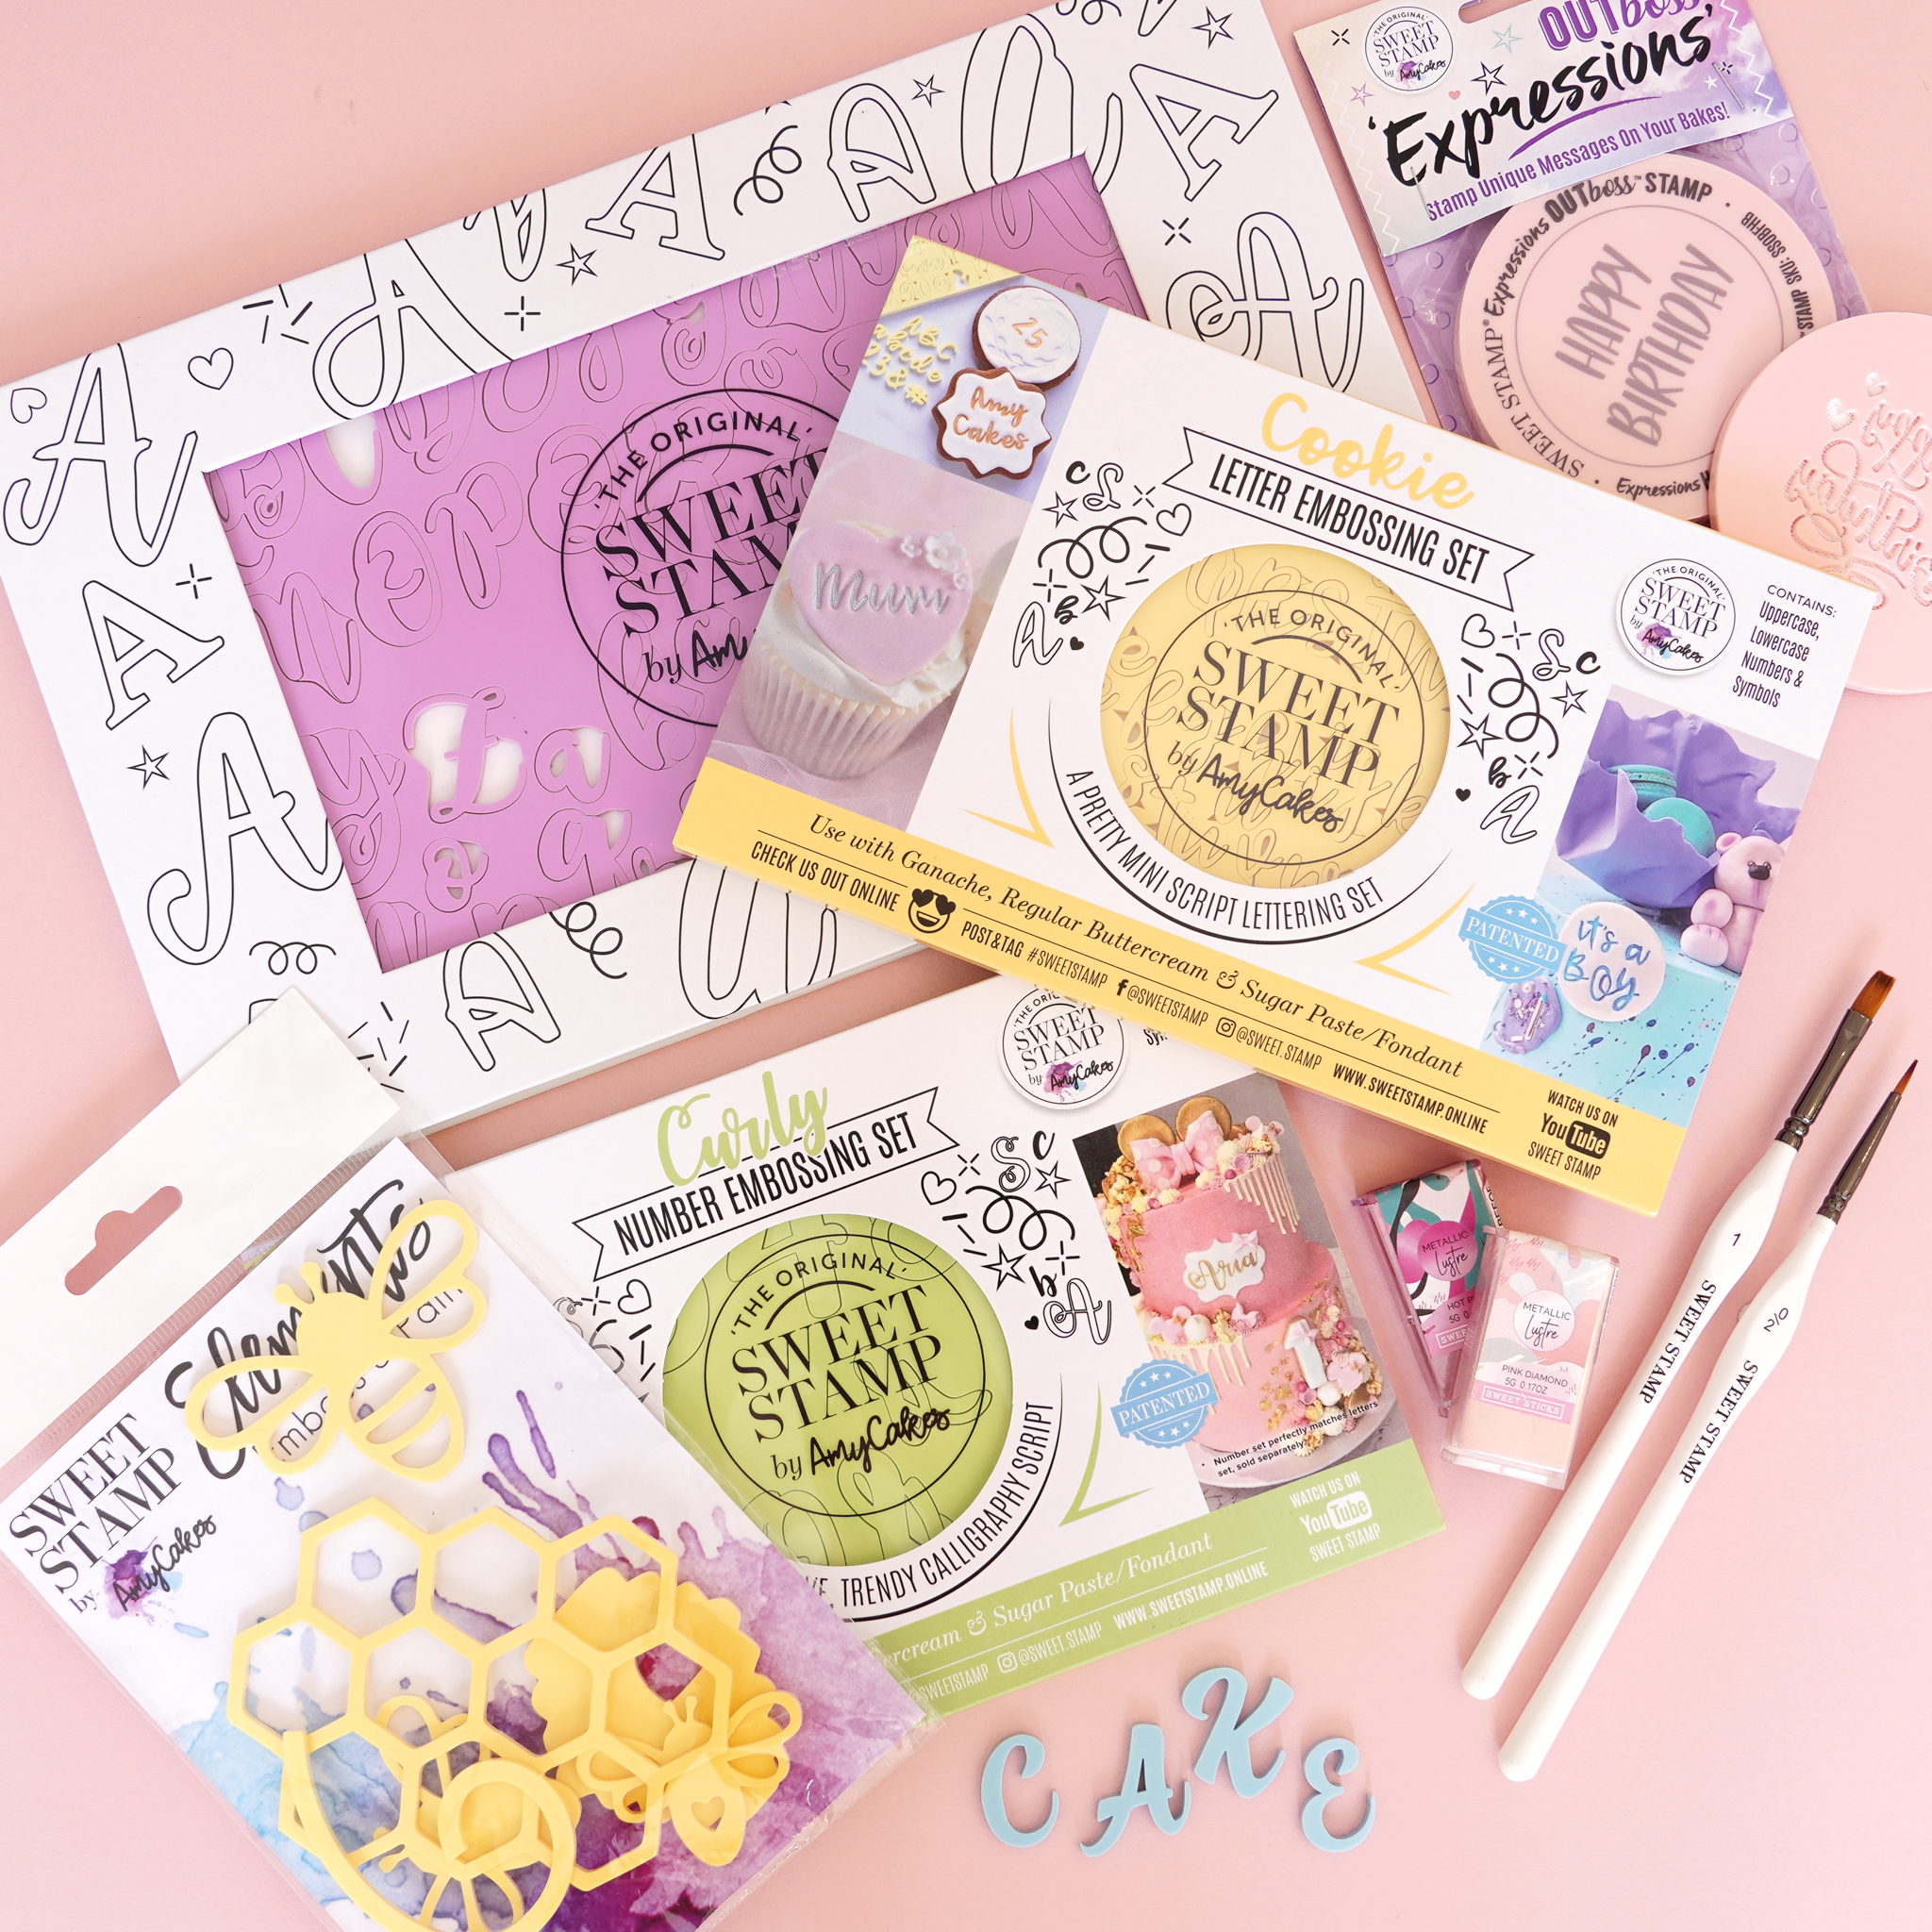 10% off sweet stamp discount code